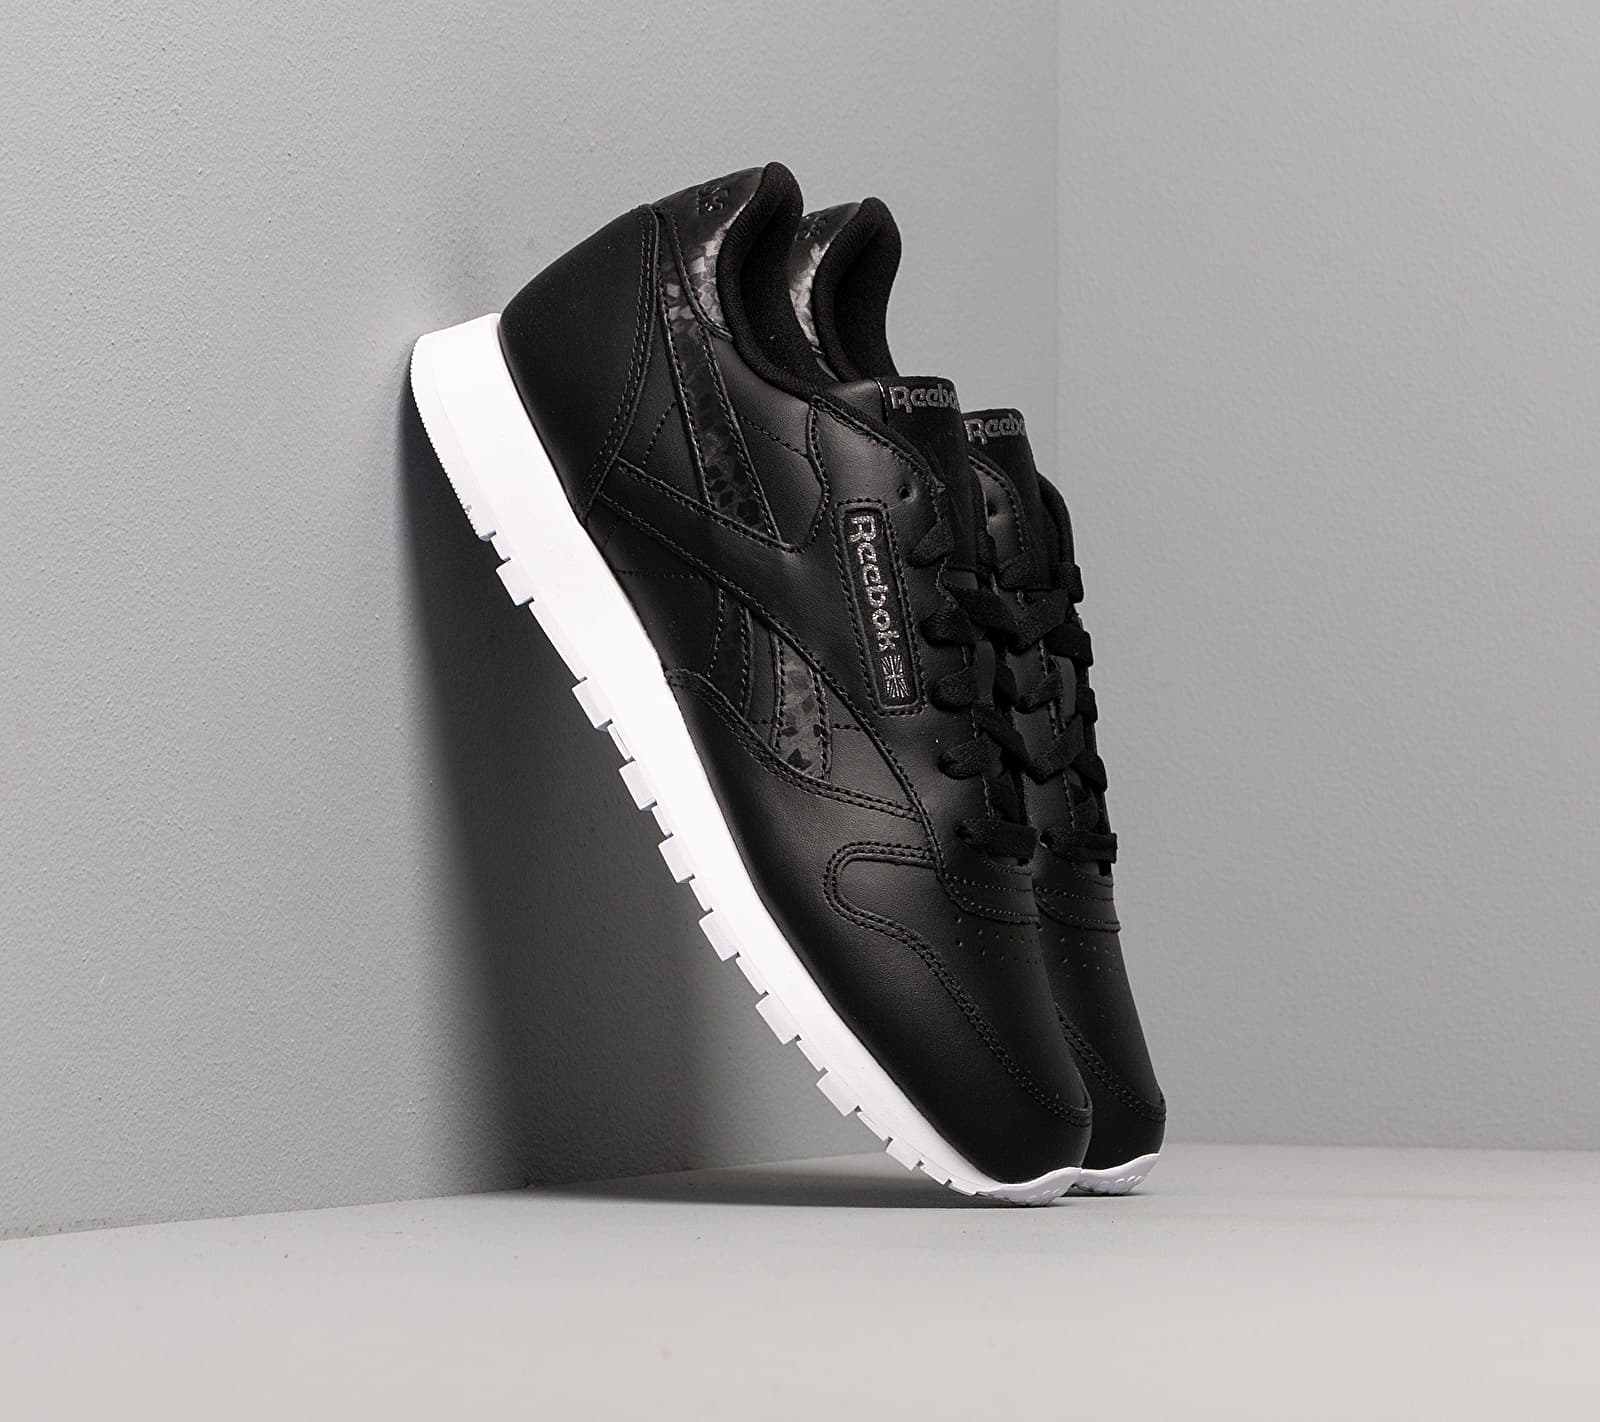 Reebok Classic Leather Black/ Black/ White EUR 41